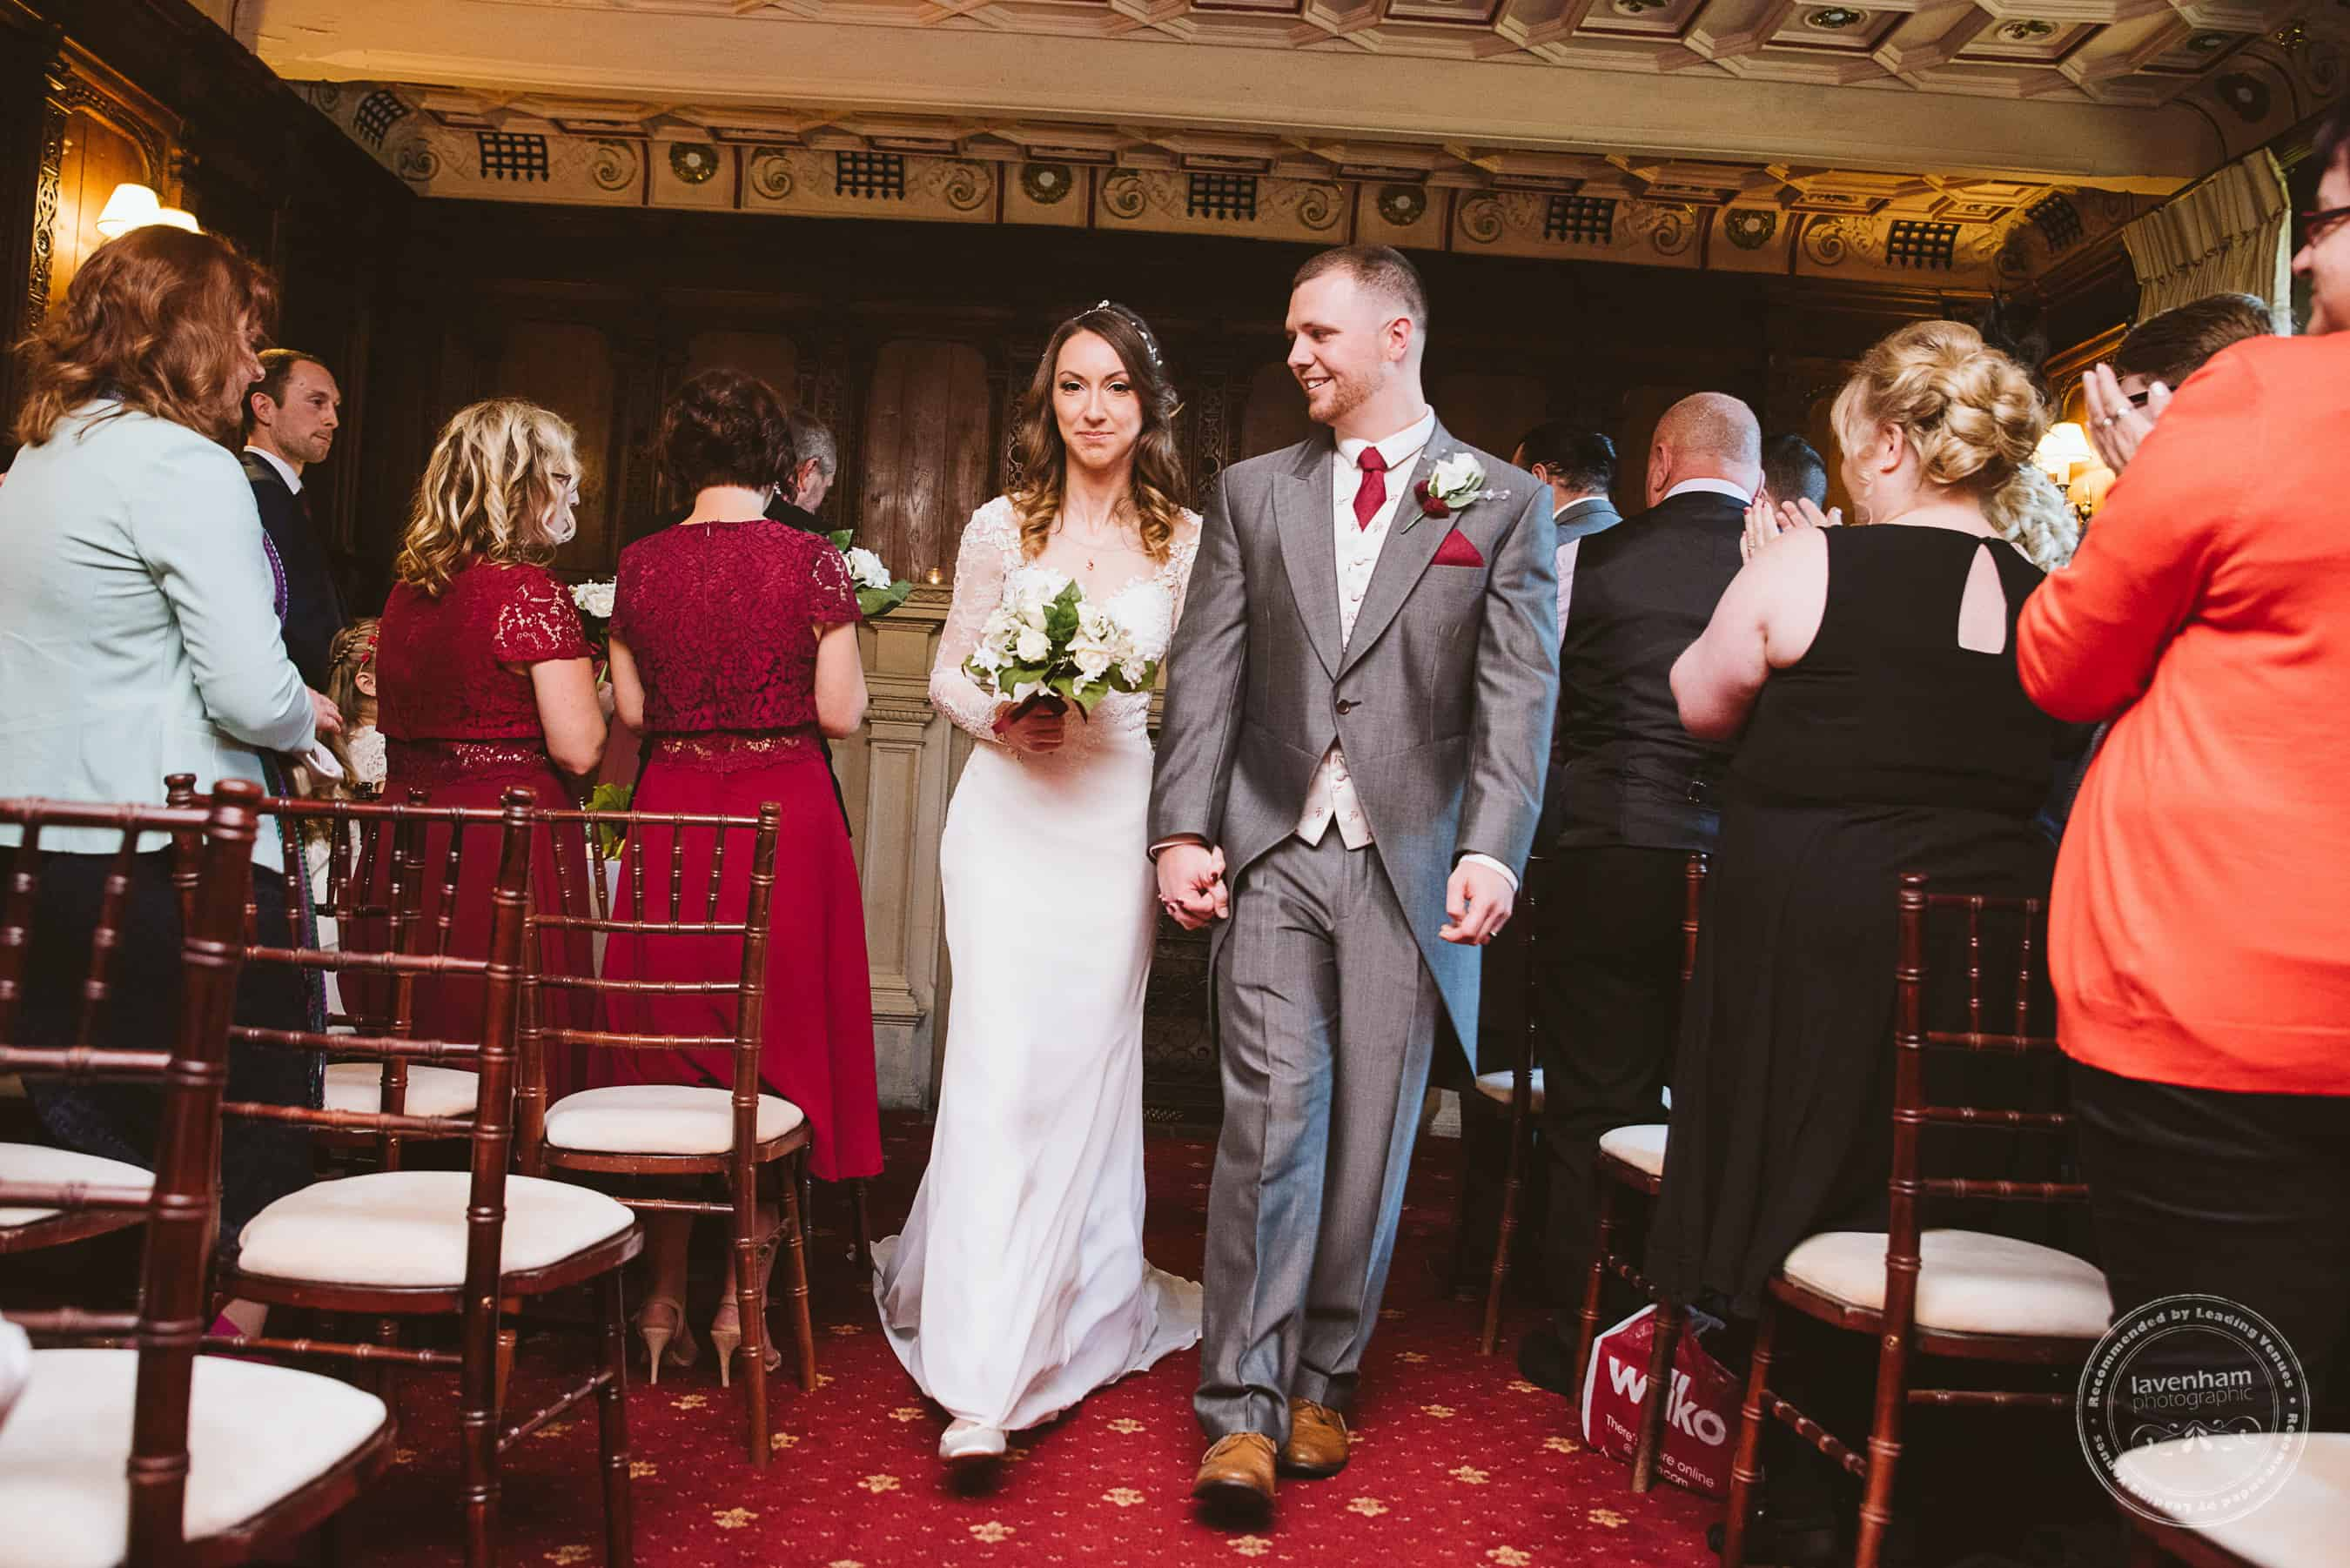 041118 Woodhall Manor Wedding Photography by Lavenham Photographic 044